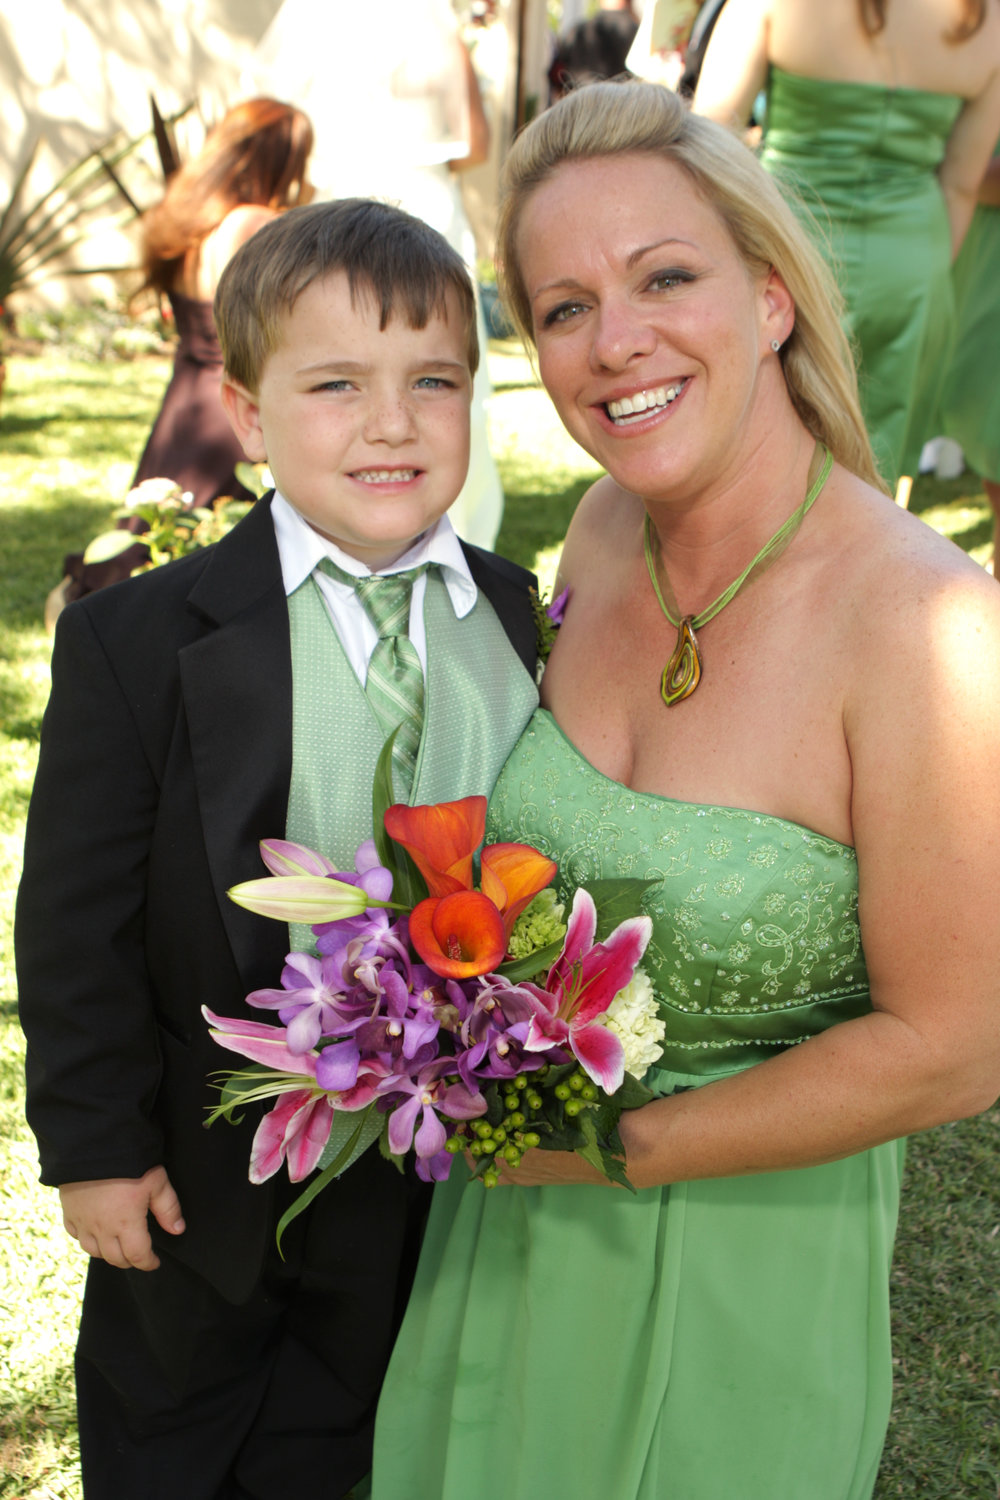 Ringbearer and bridesmaid florals